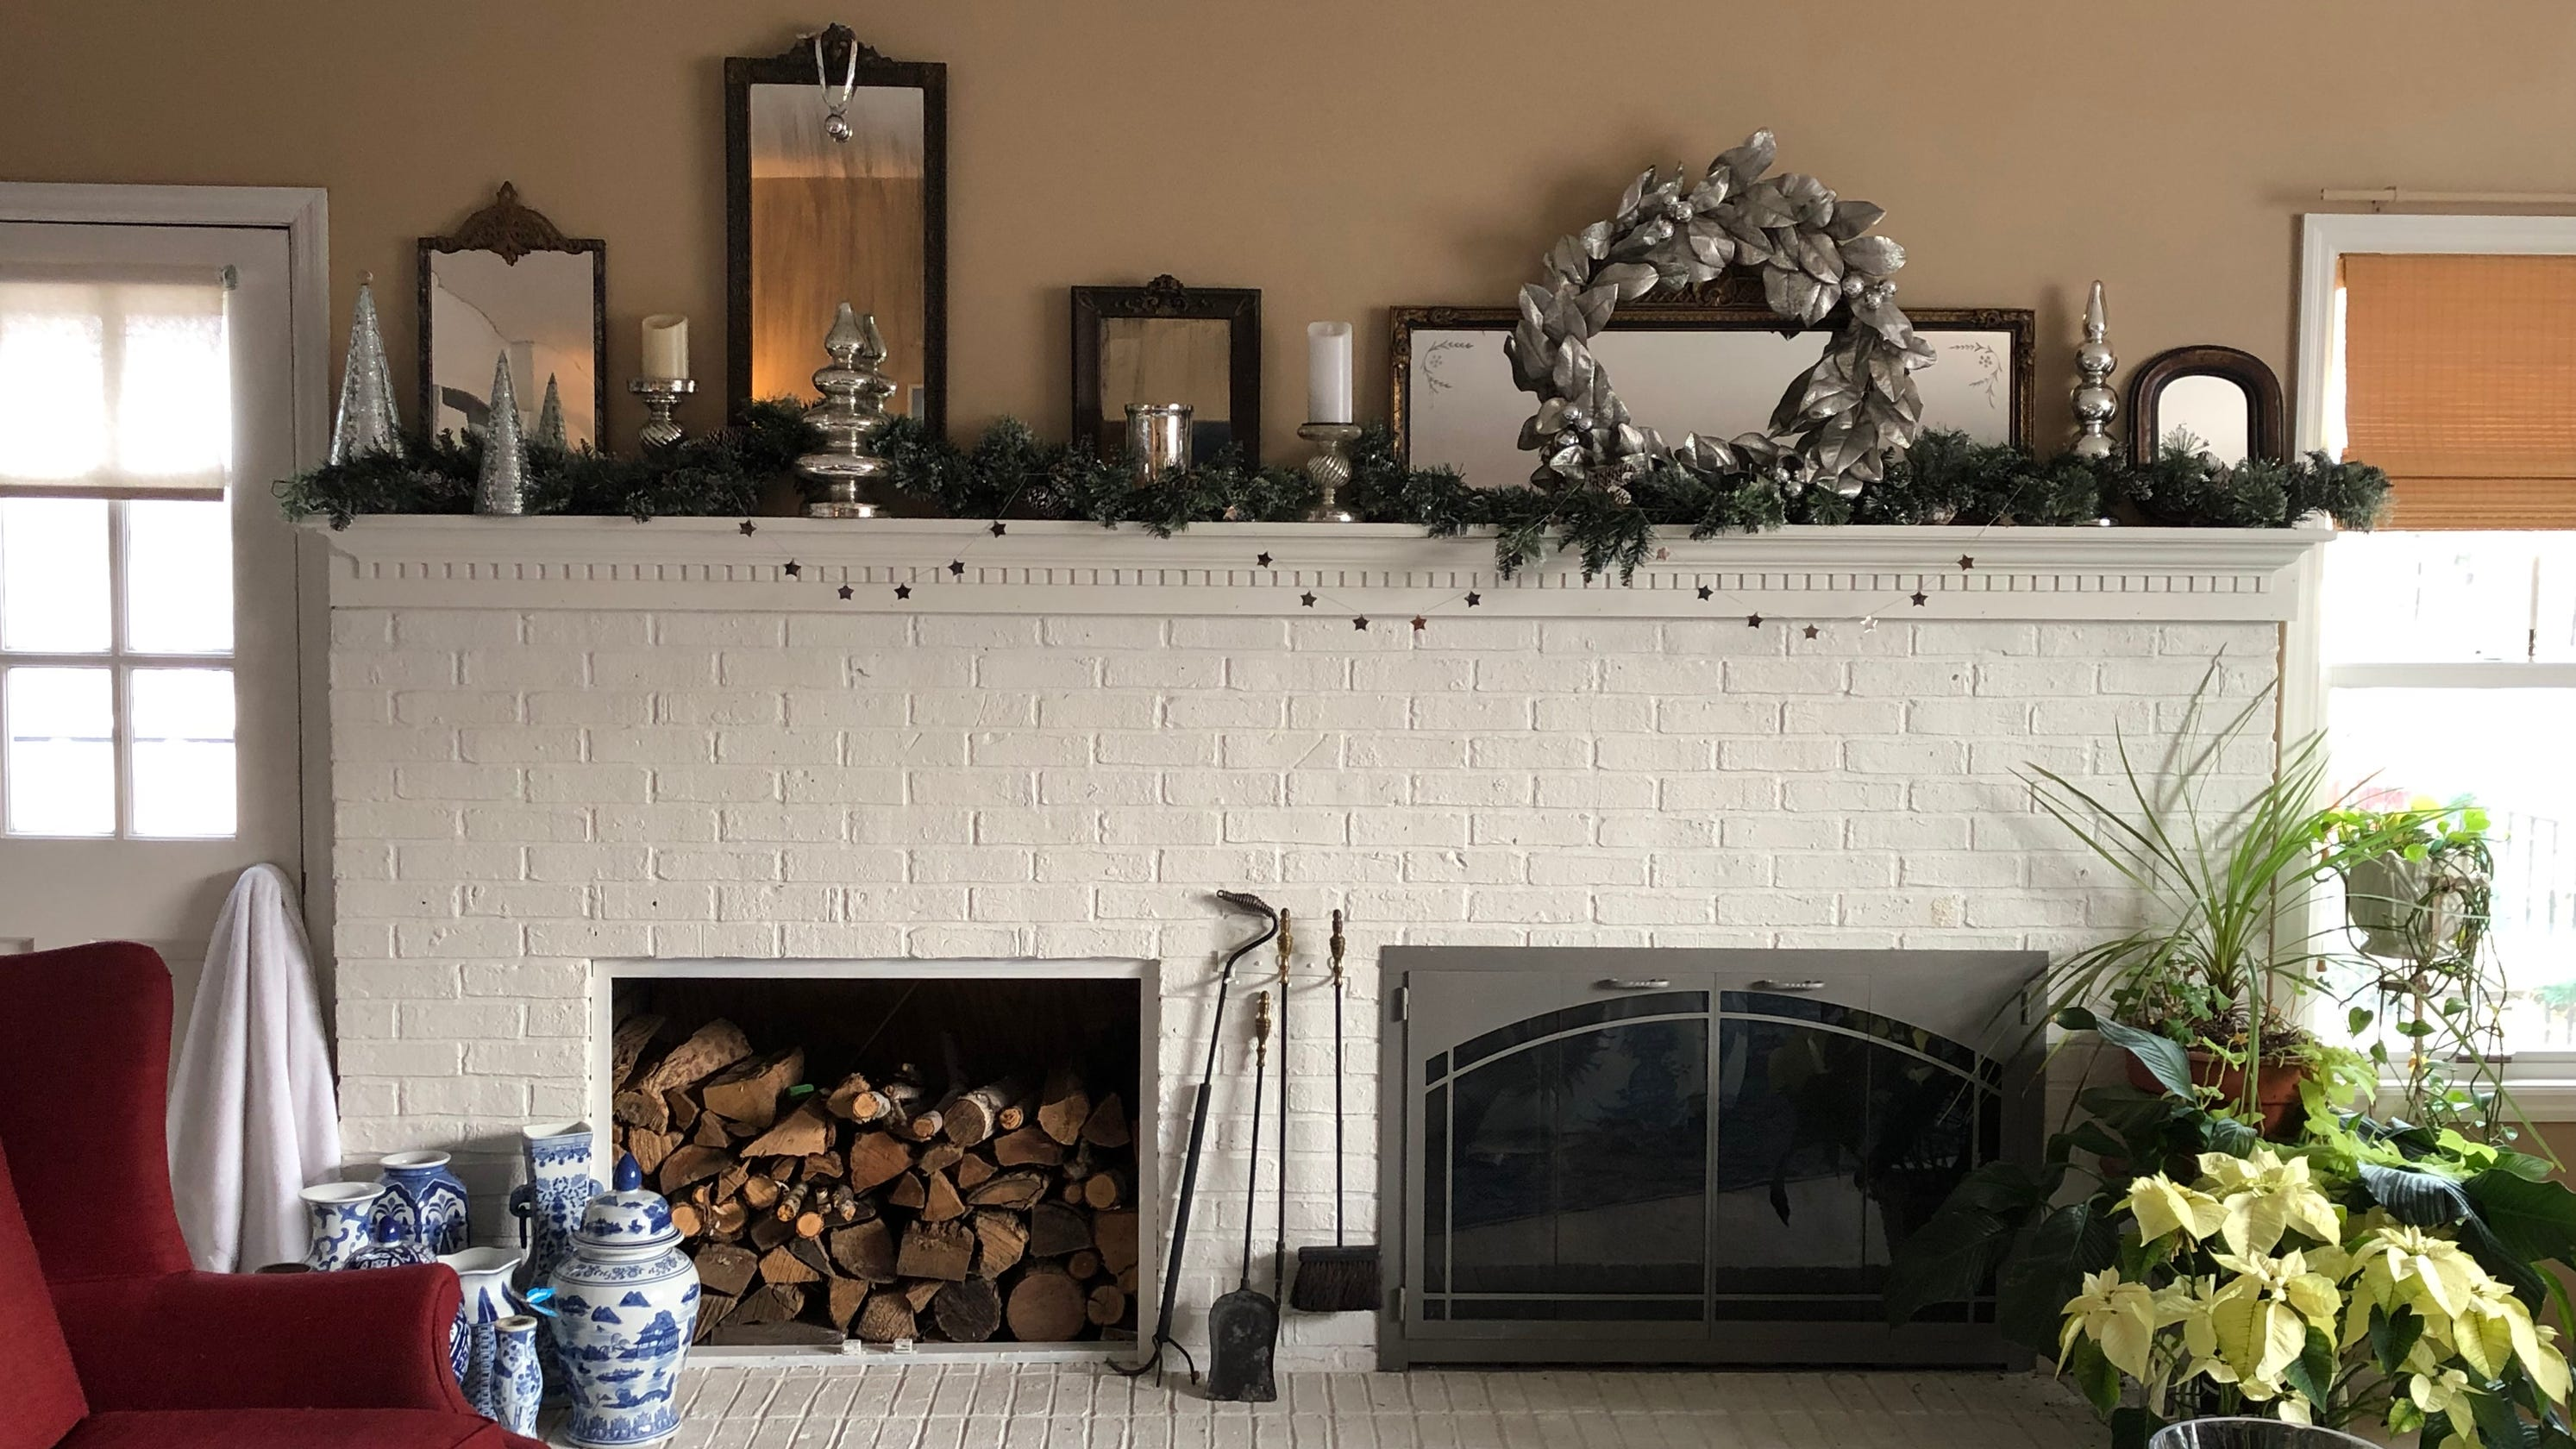 Holiday mantel displays: Memories, collectibles shown each ...